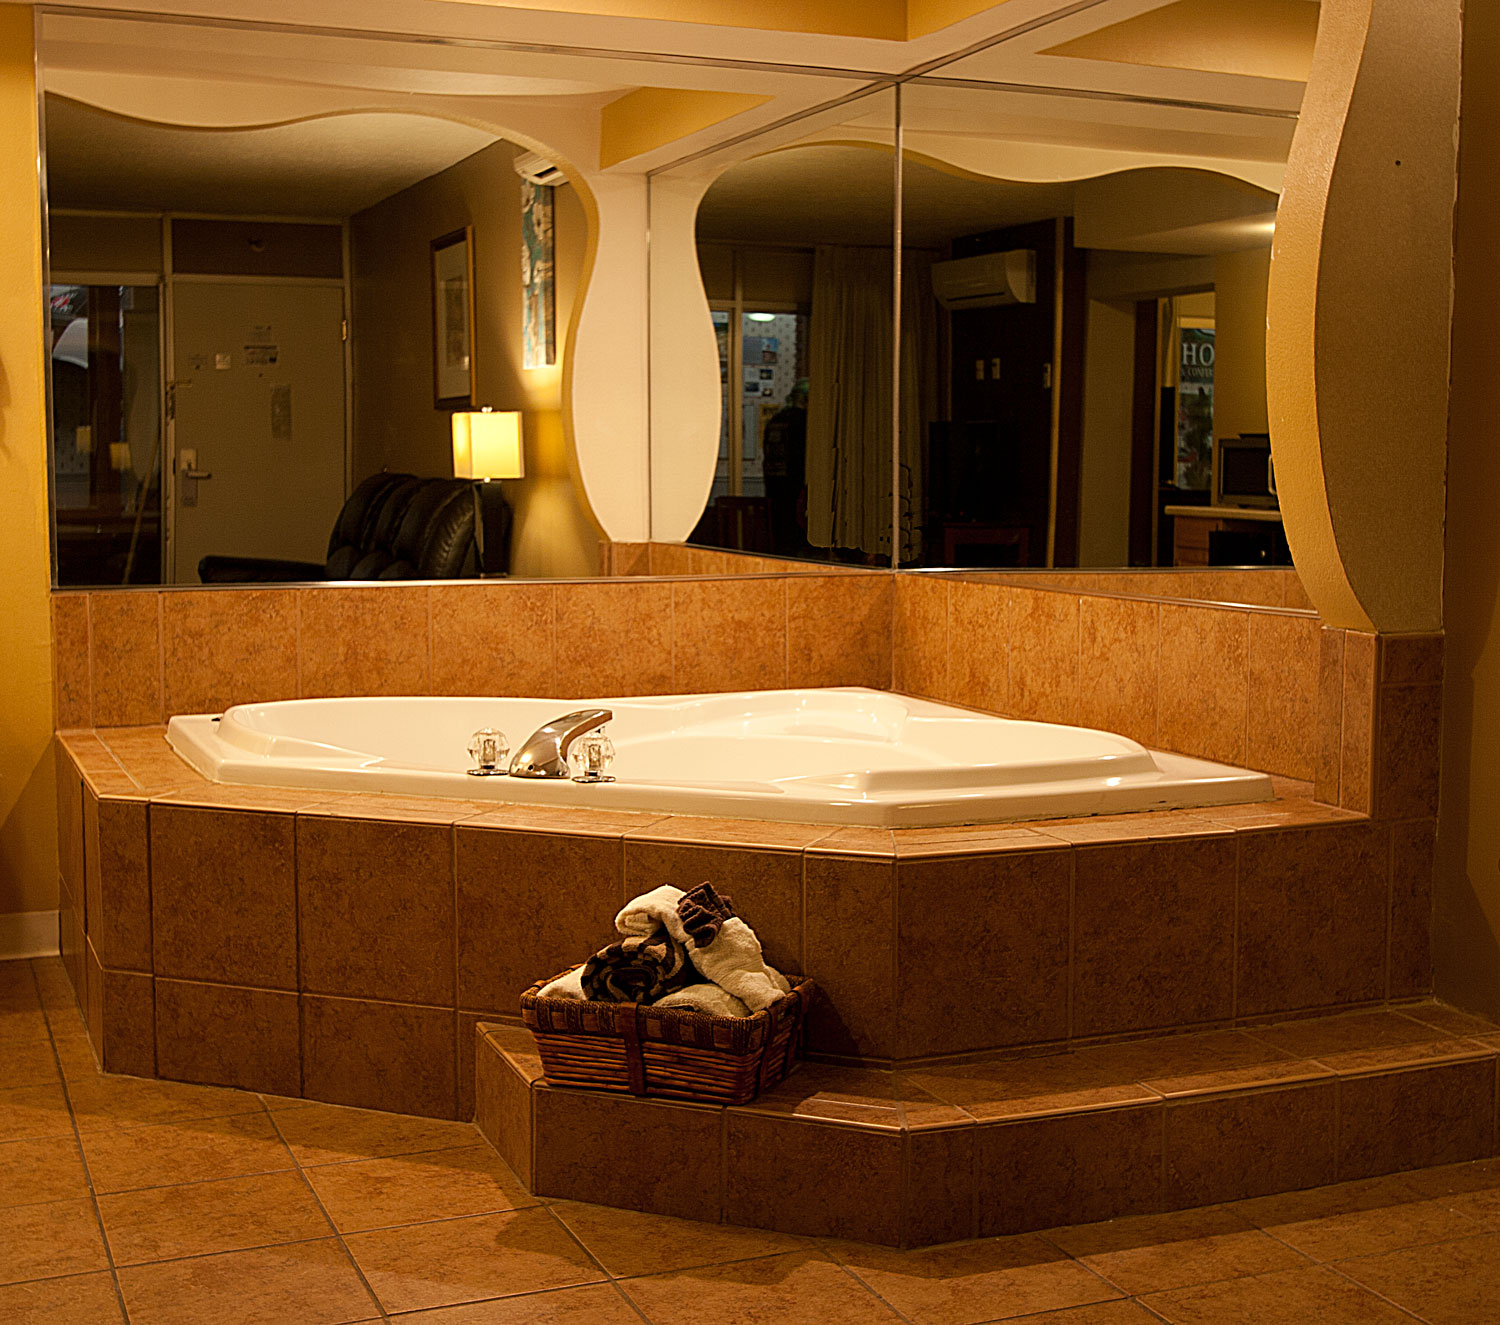 Route 66 Hotel Jaccuzi And Executive Suites Family